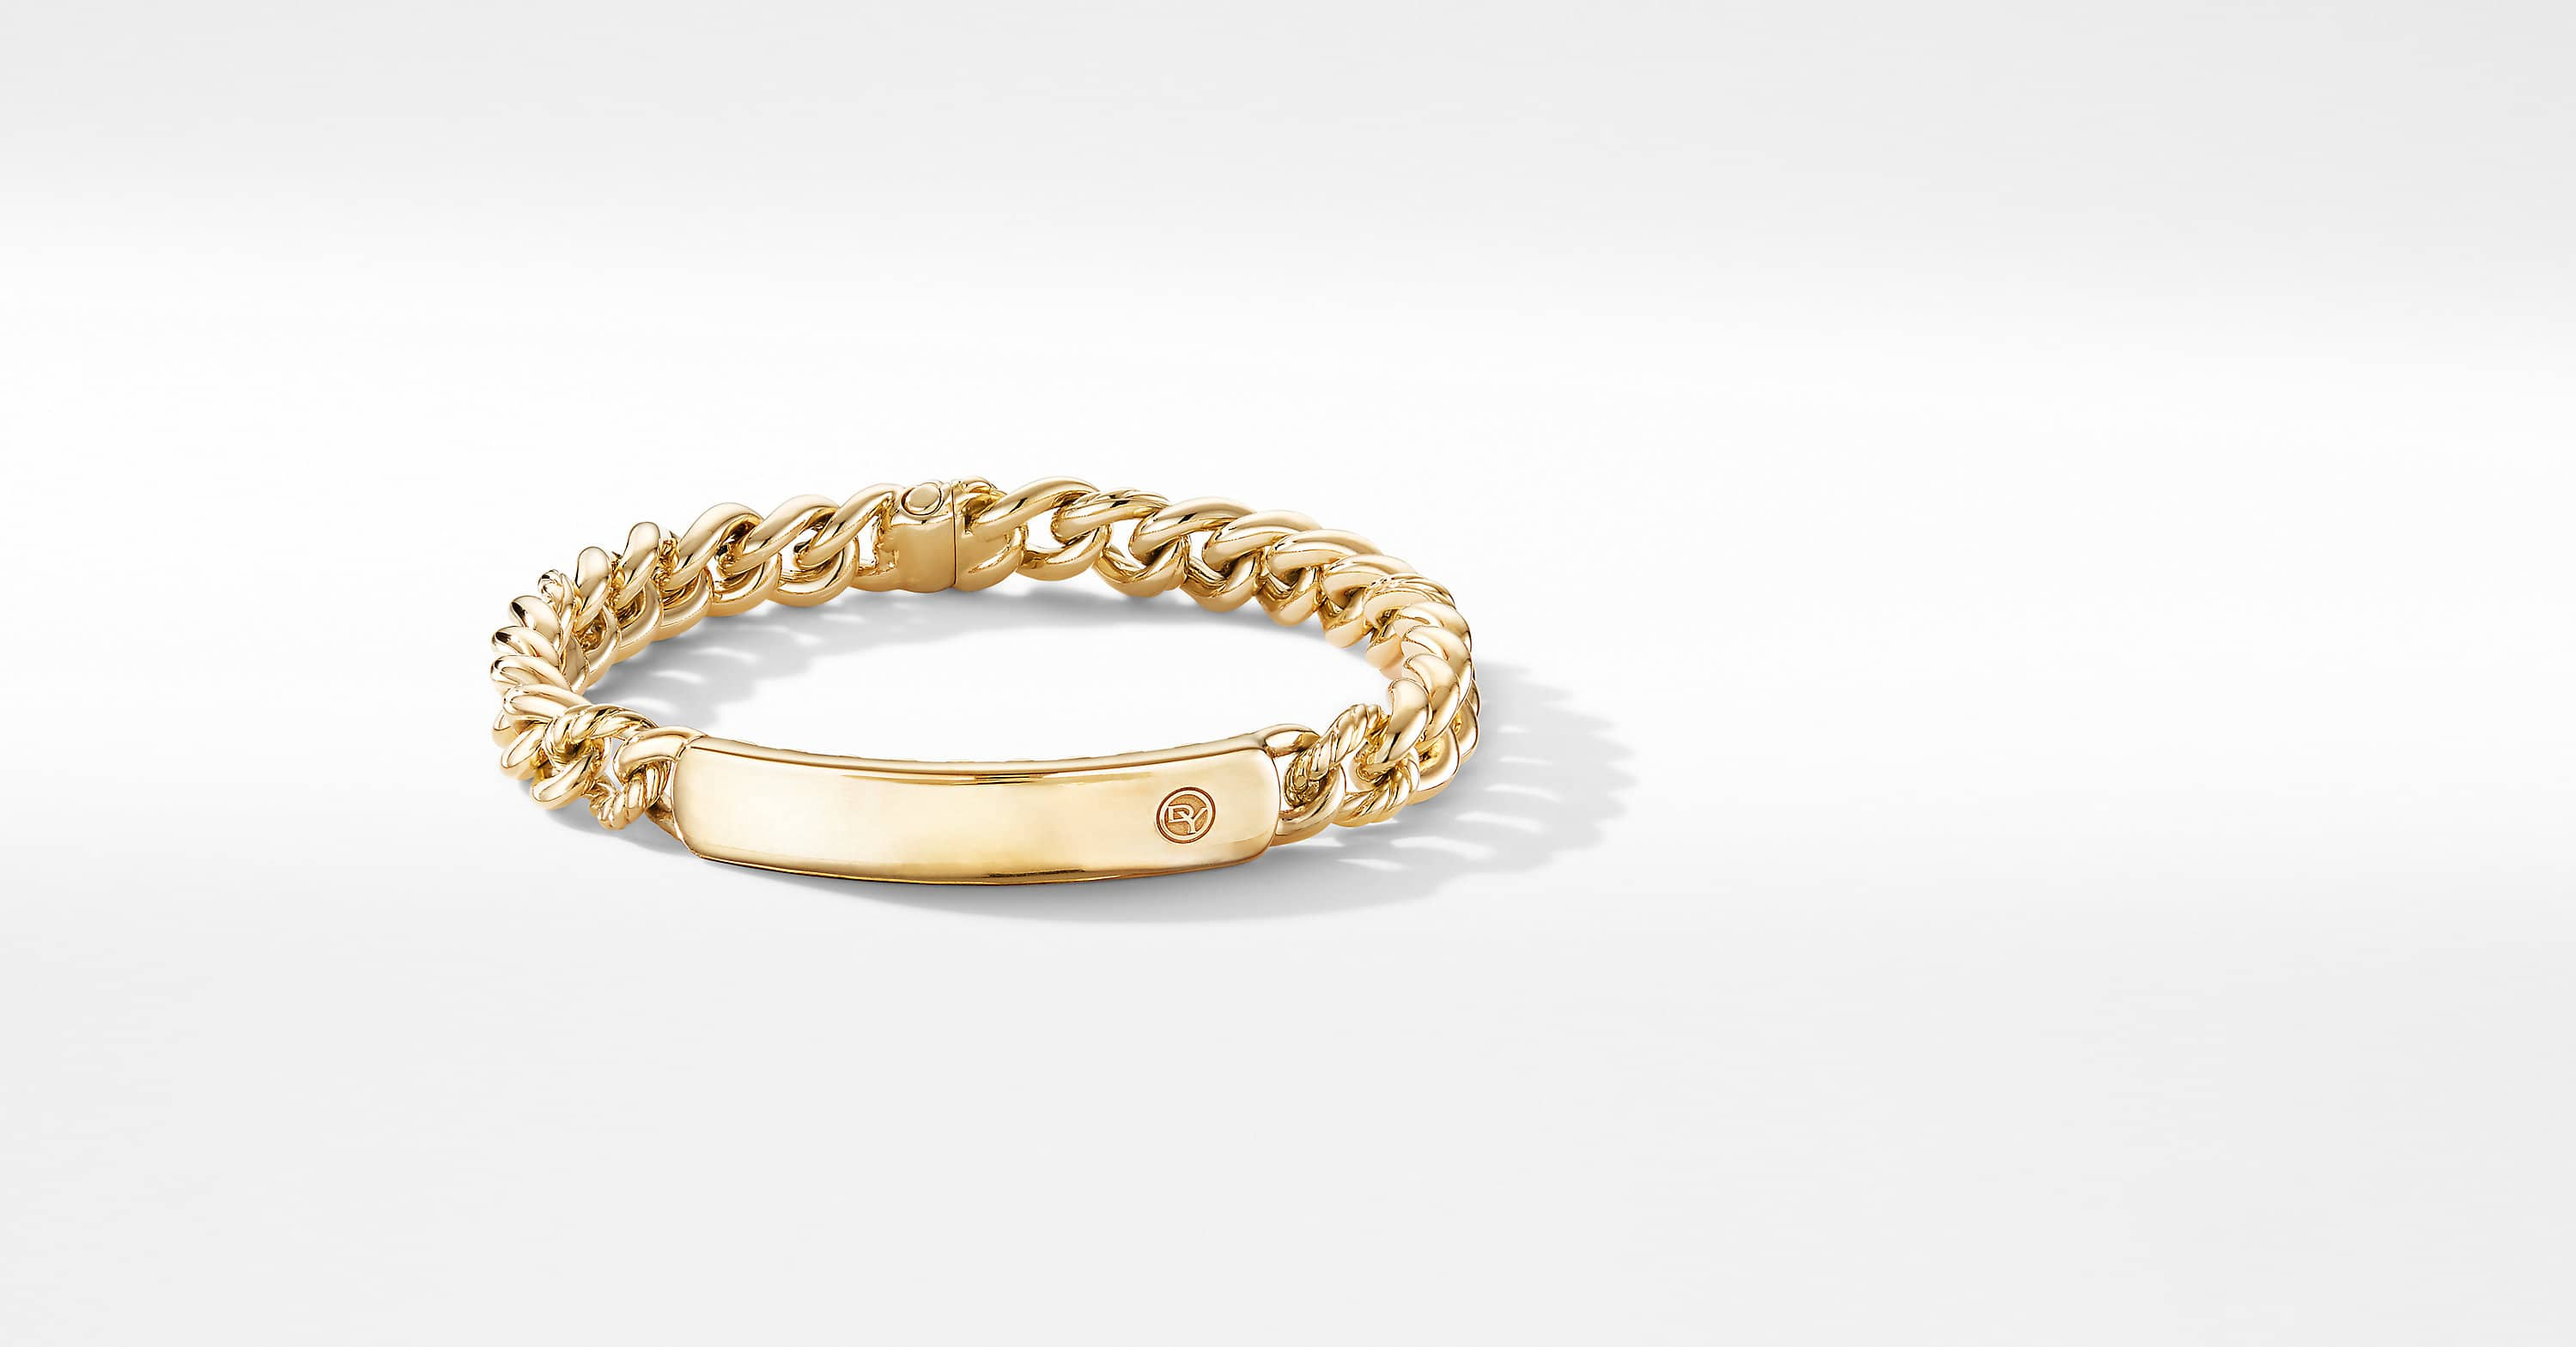 Belmont Curb Link ID Bracelet in 18K Yellow Gold